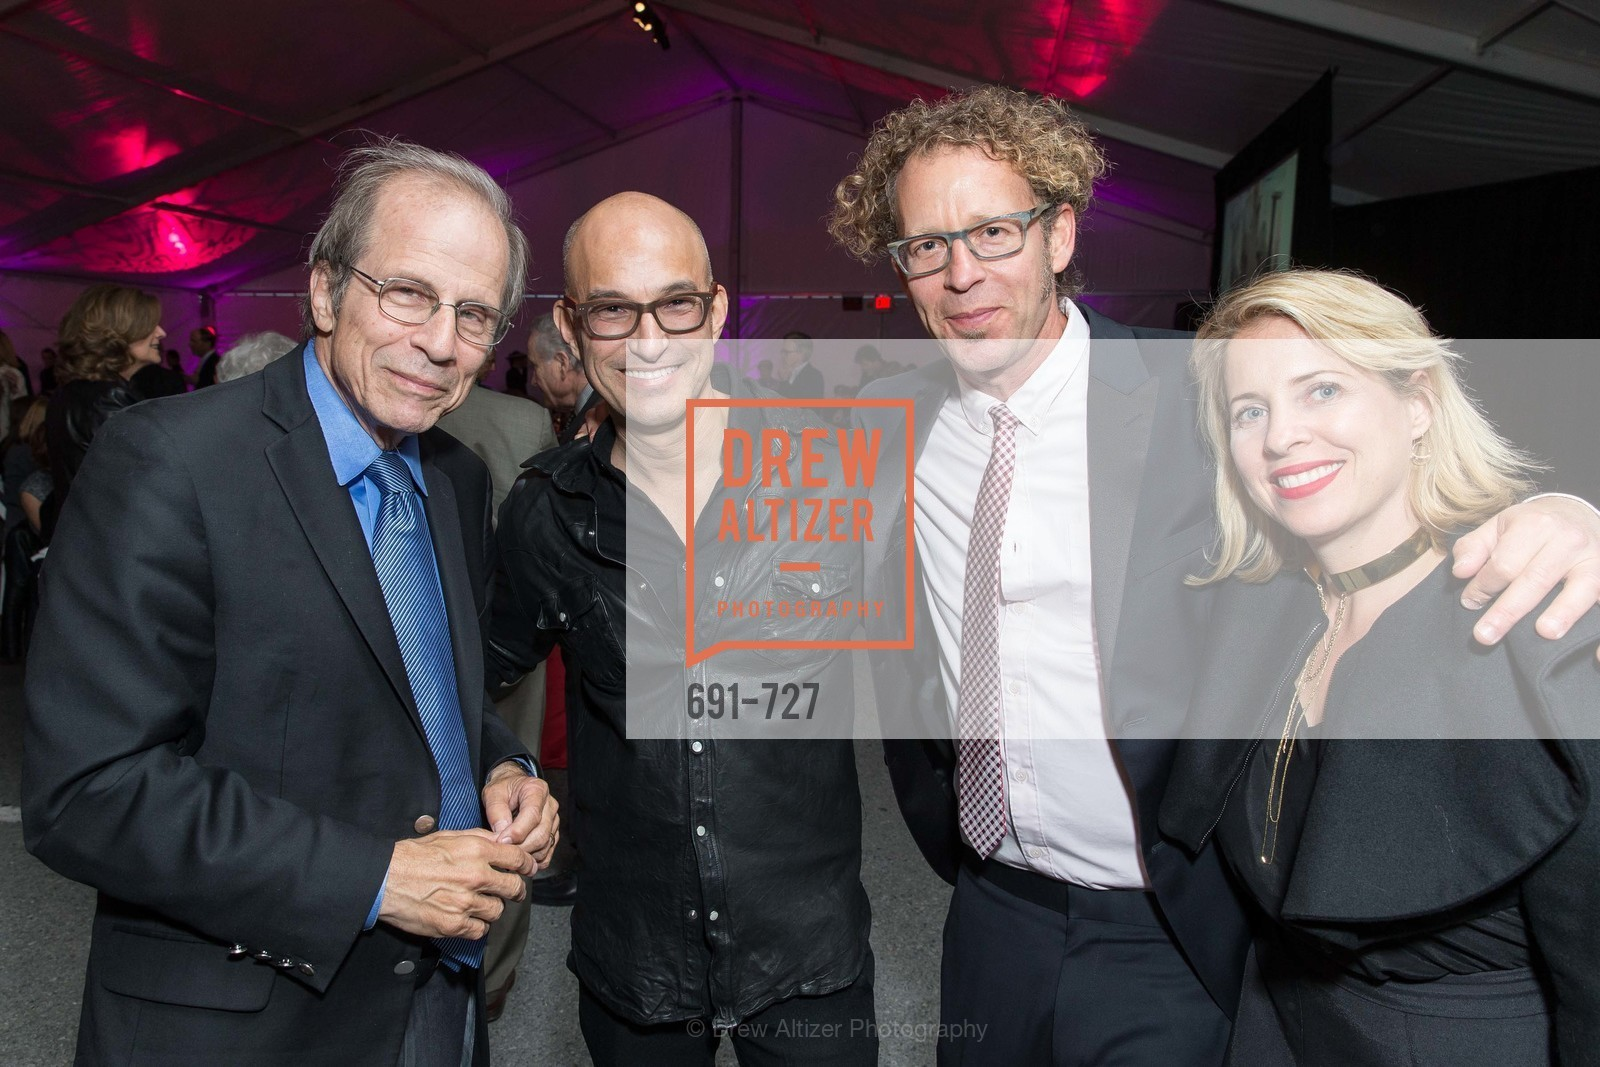 Michael  Krasny, Eric McDougall, Ken Goldberg, Tiffany Shlain, SAN FRANCISCO ART INSTITUTE Gala Honoring Art Visionary and Advocate ROSELYNE CHROMAN SWIG, US, May 13th, 2015,Drew Altizer, Drew Altizer Photography, full-service agency, private events, San Francisco photographer, photographer california